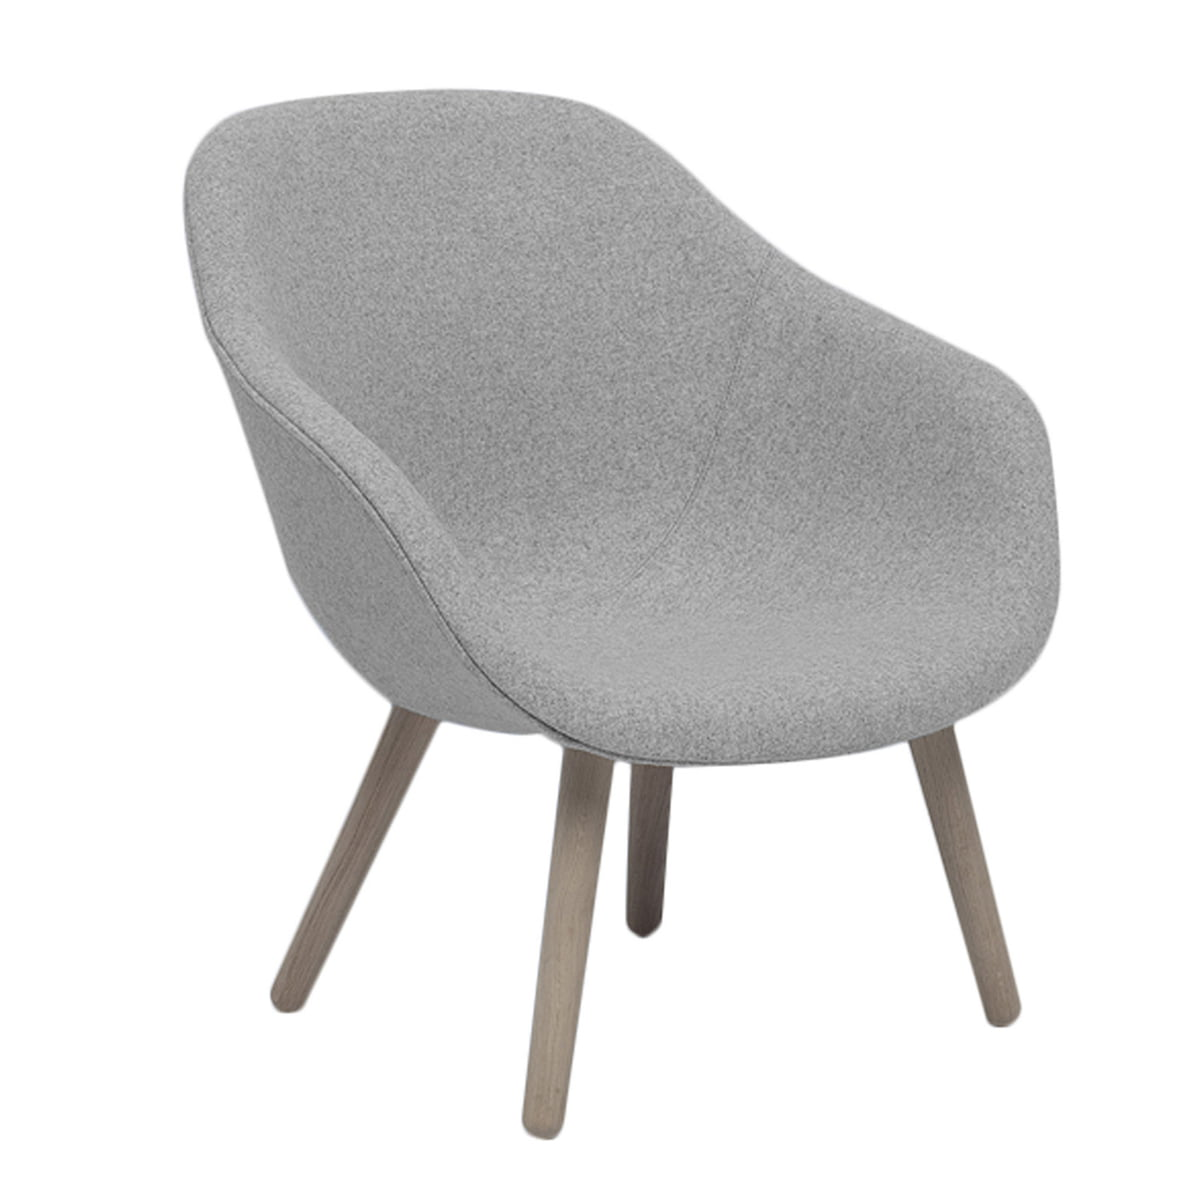 About A Lounge Chair Aal 82 Par Hay